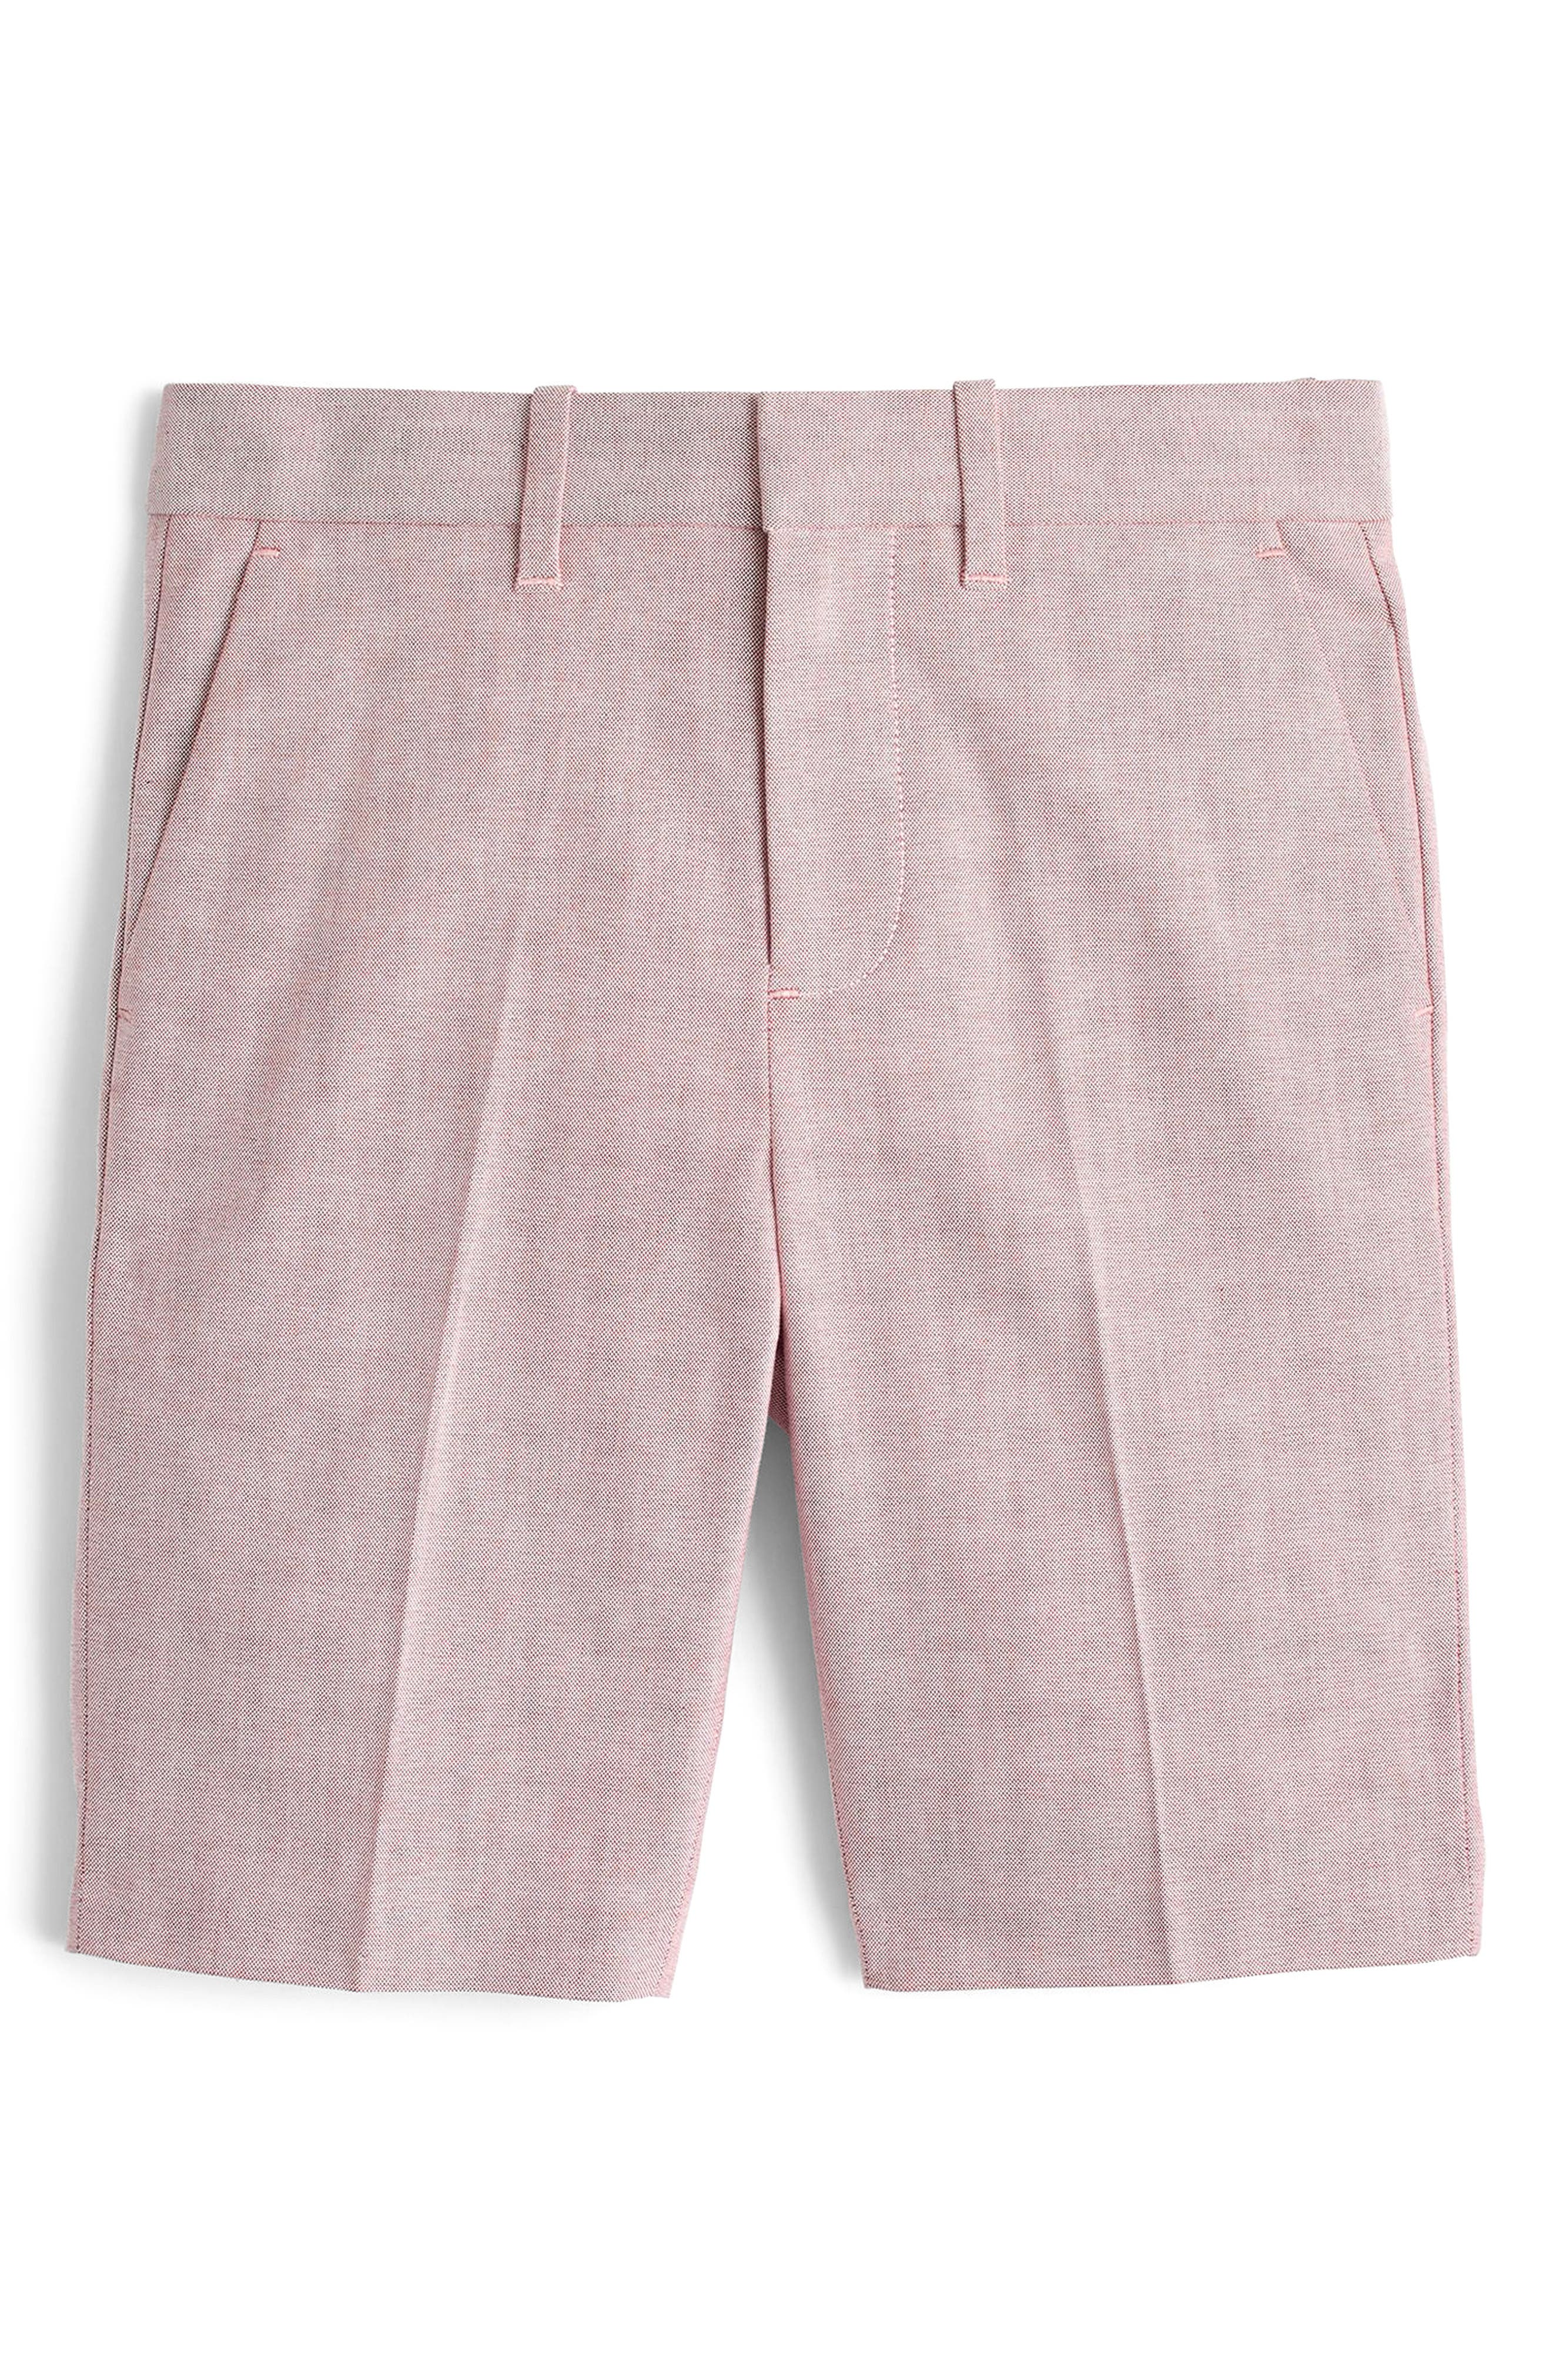 crewcuts by J.Crew Ludlow Stretch Oxford Suit Shorts (Toddler Boys, Little Boys & Big Boys)